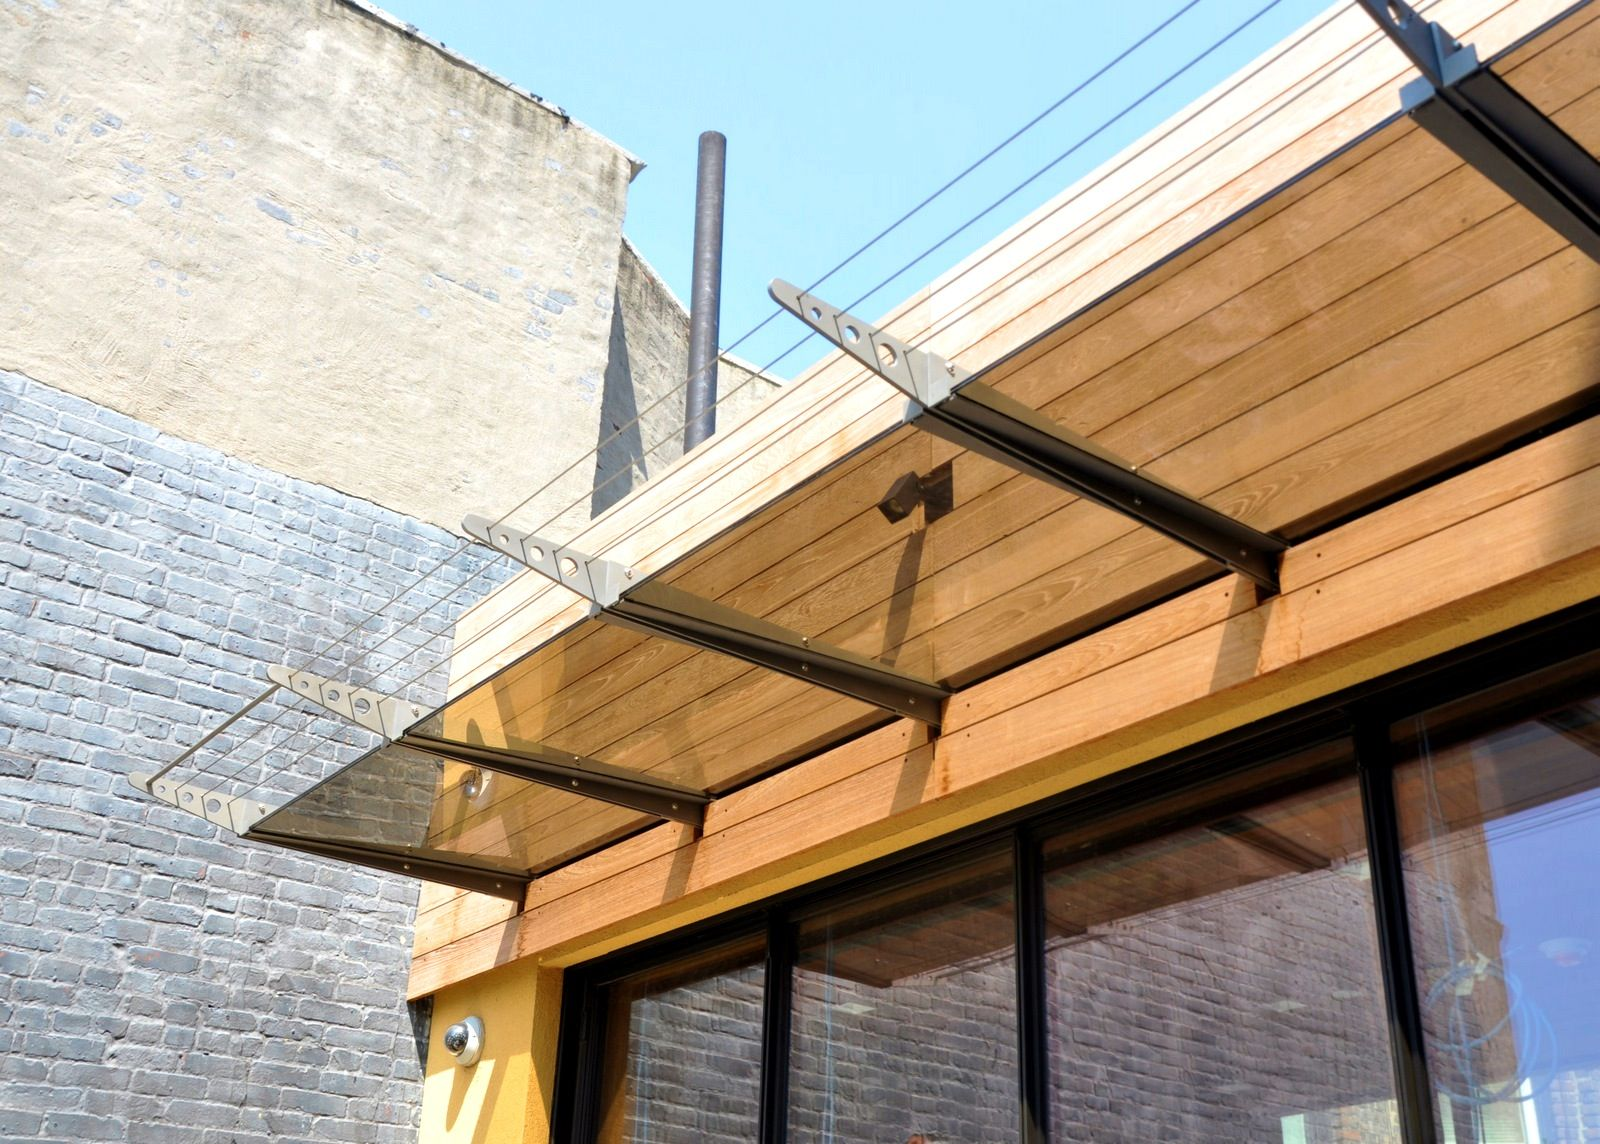 Diy Wood Window Awning Plans - New Home Plans Design